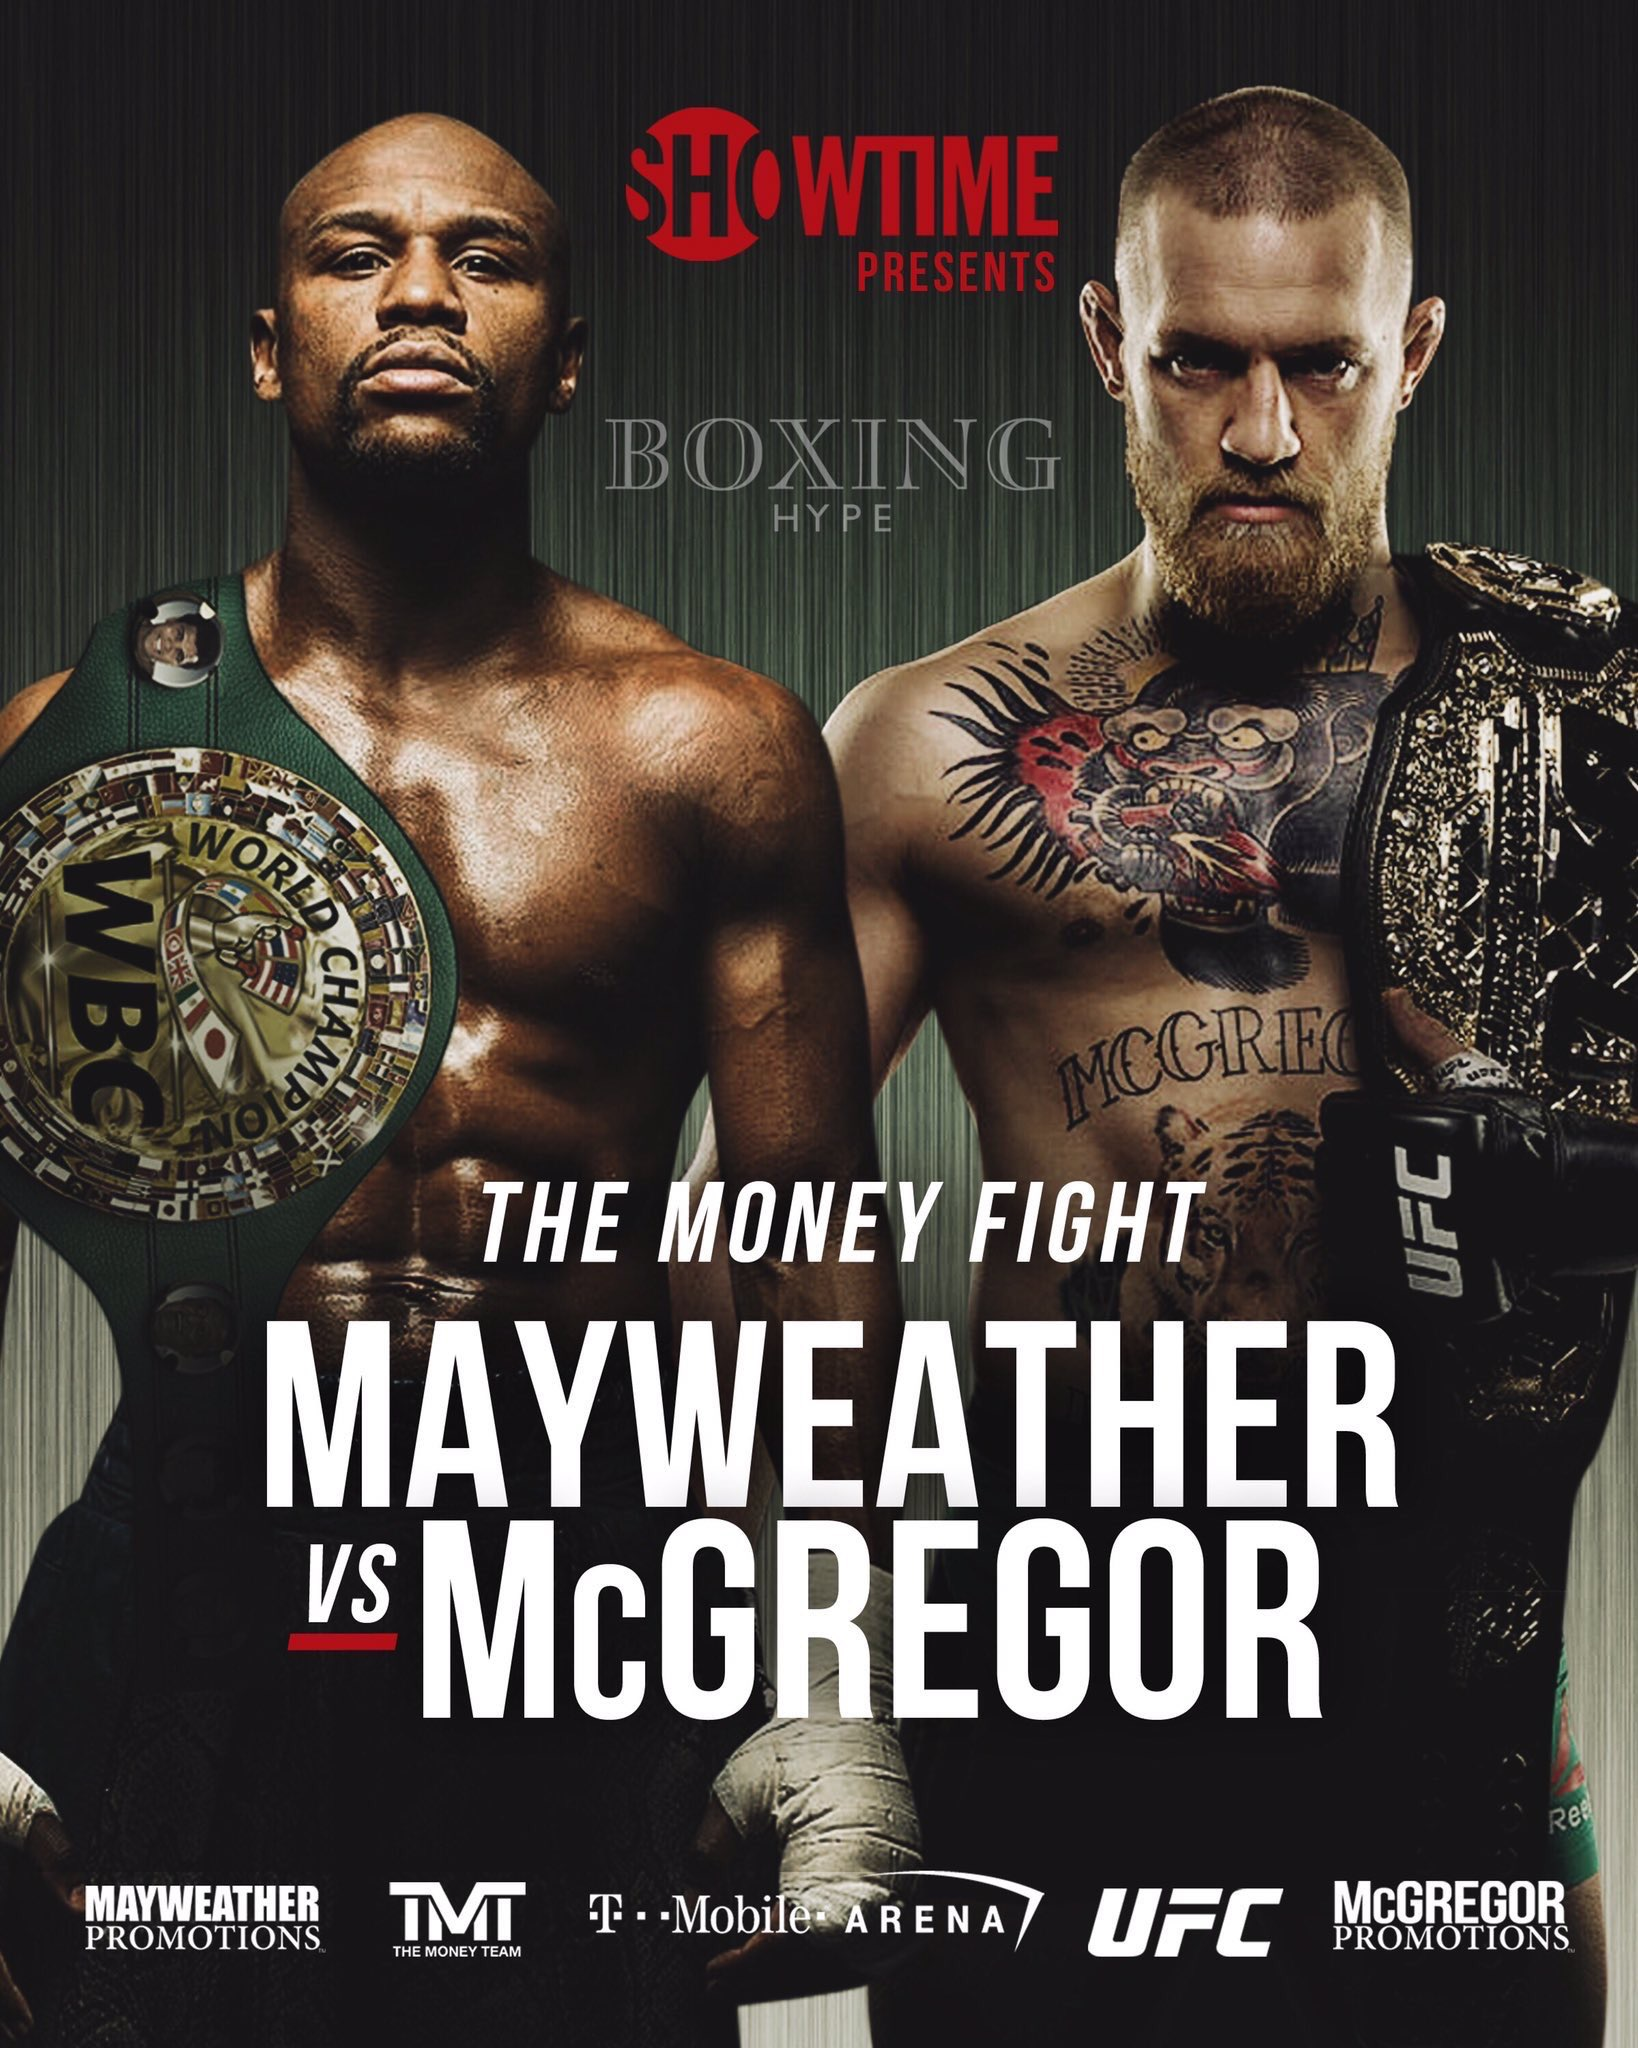 Mayweather Vs Mcgregor Oddschecker